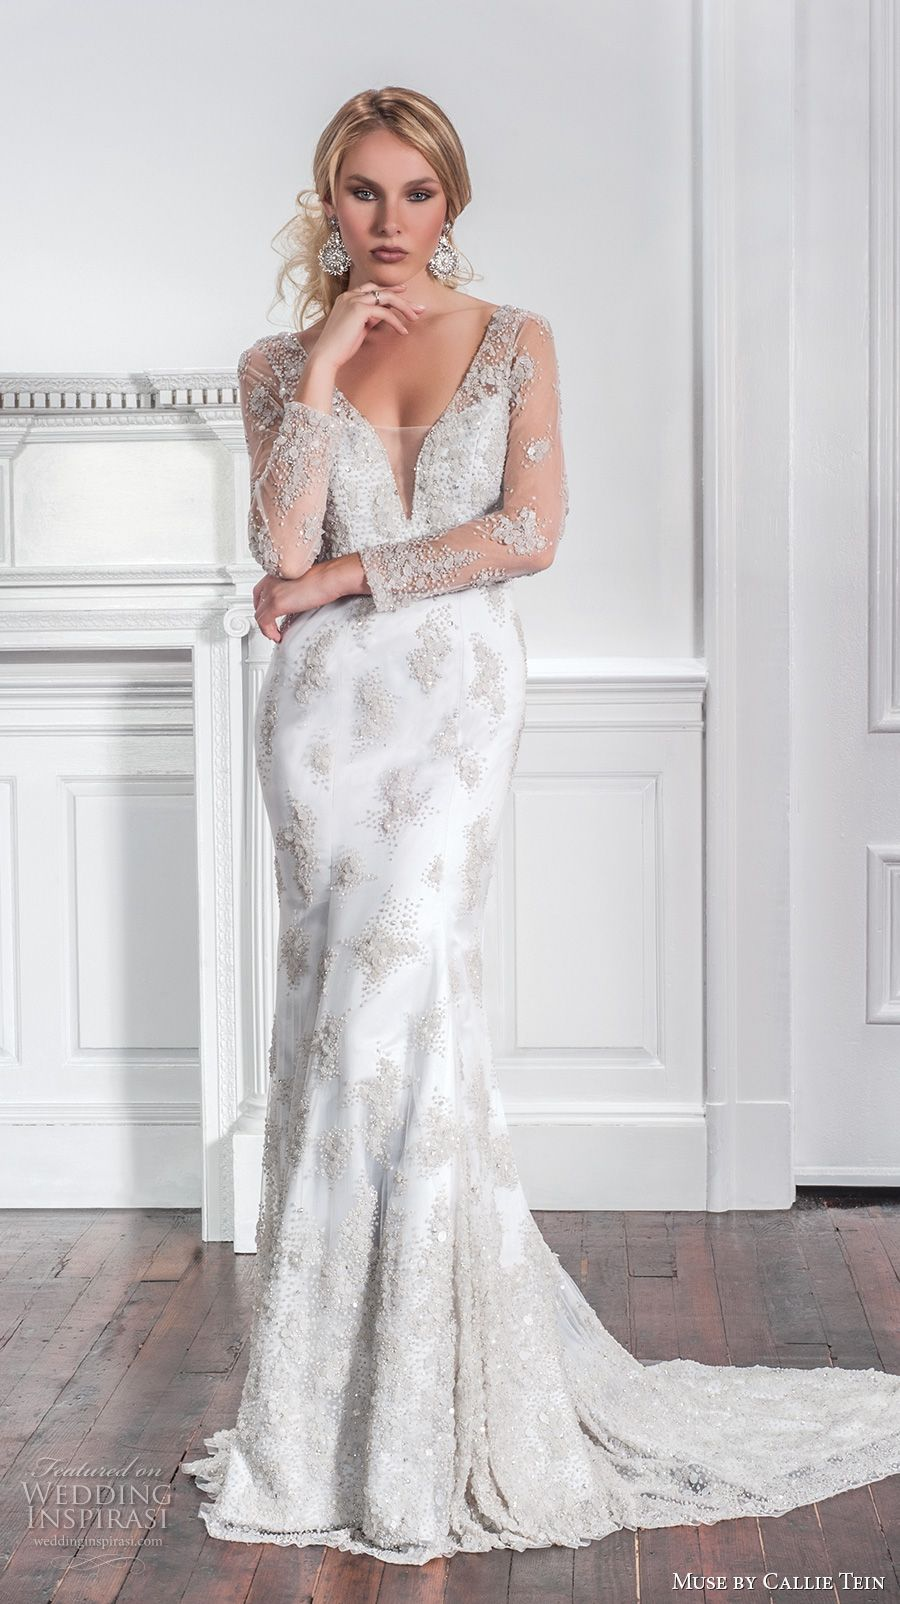 Muse by callie tein fall wedding dresses sexy flare and wedding